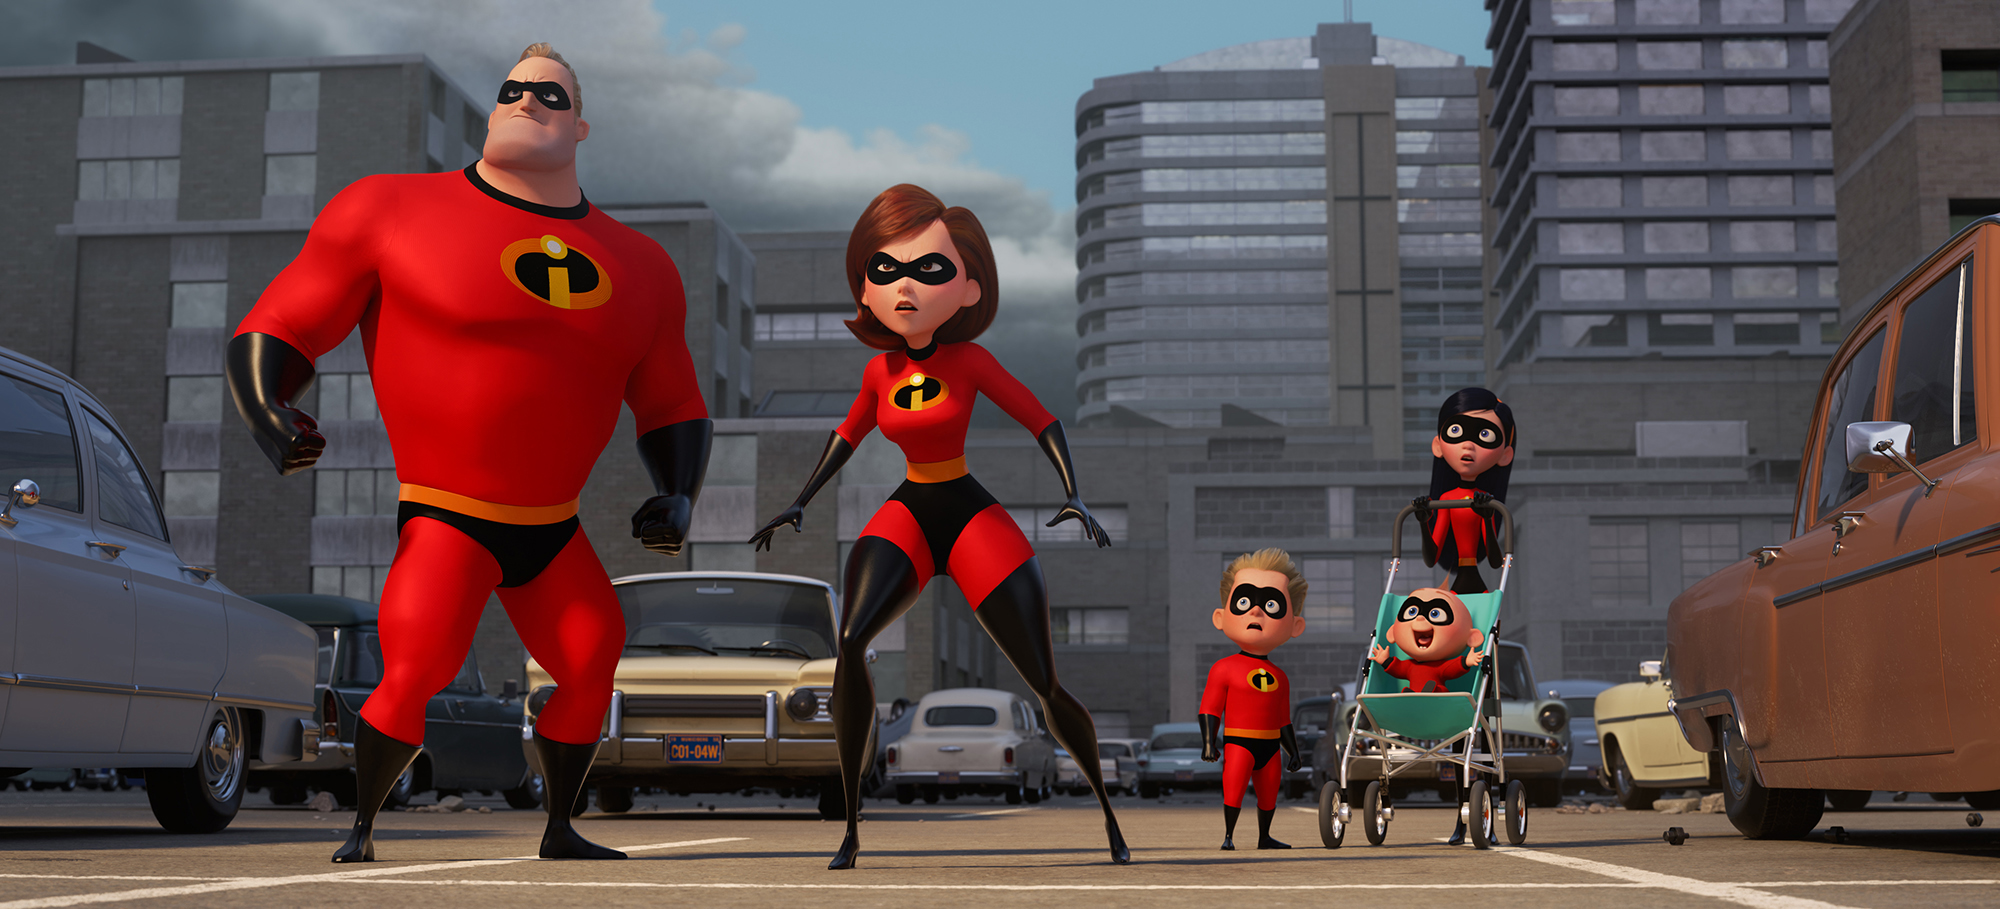 'The Incredibles 2' is now poised to become the biggest animated movie ever